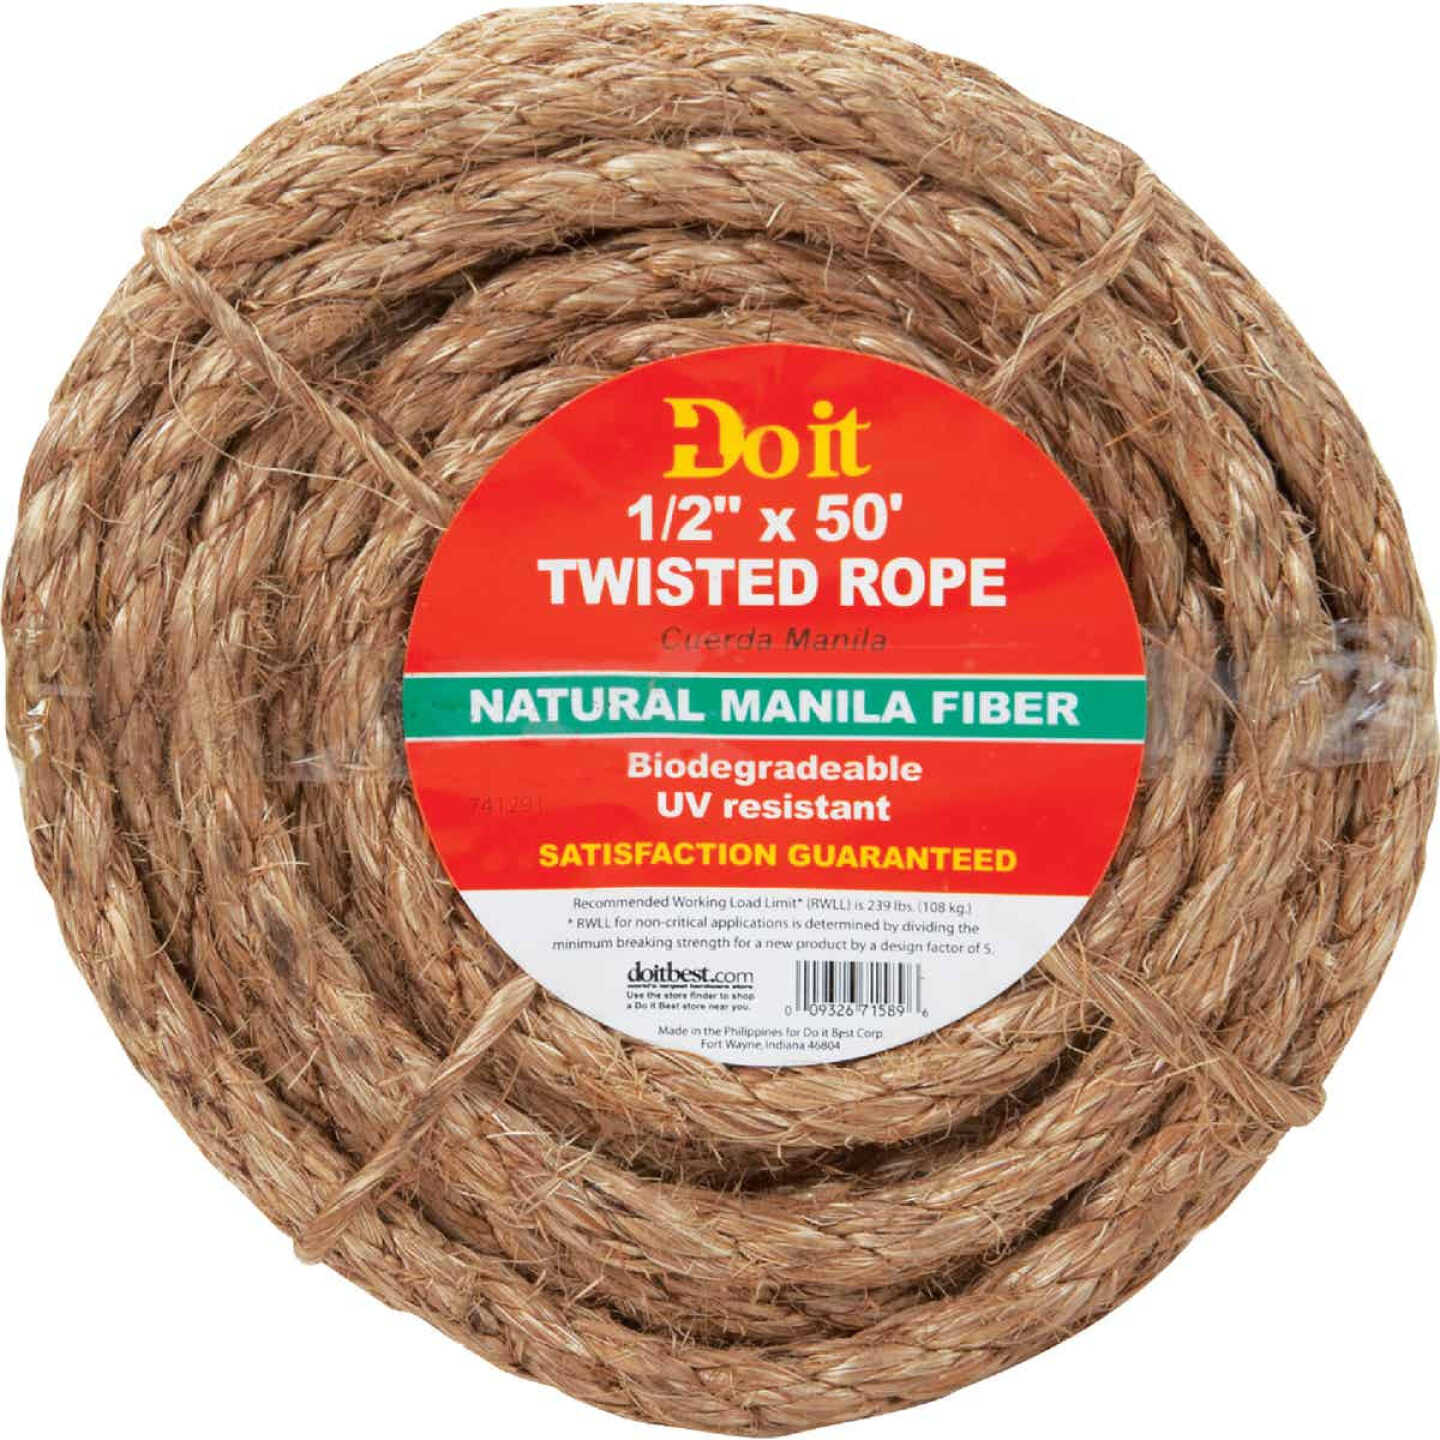 Do it 1/2 In. x 50 Ft. Natural Twisted Manila Fiber Packaged Rope Image 1